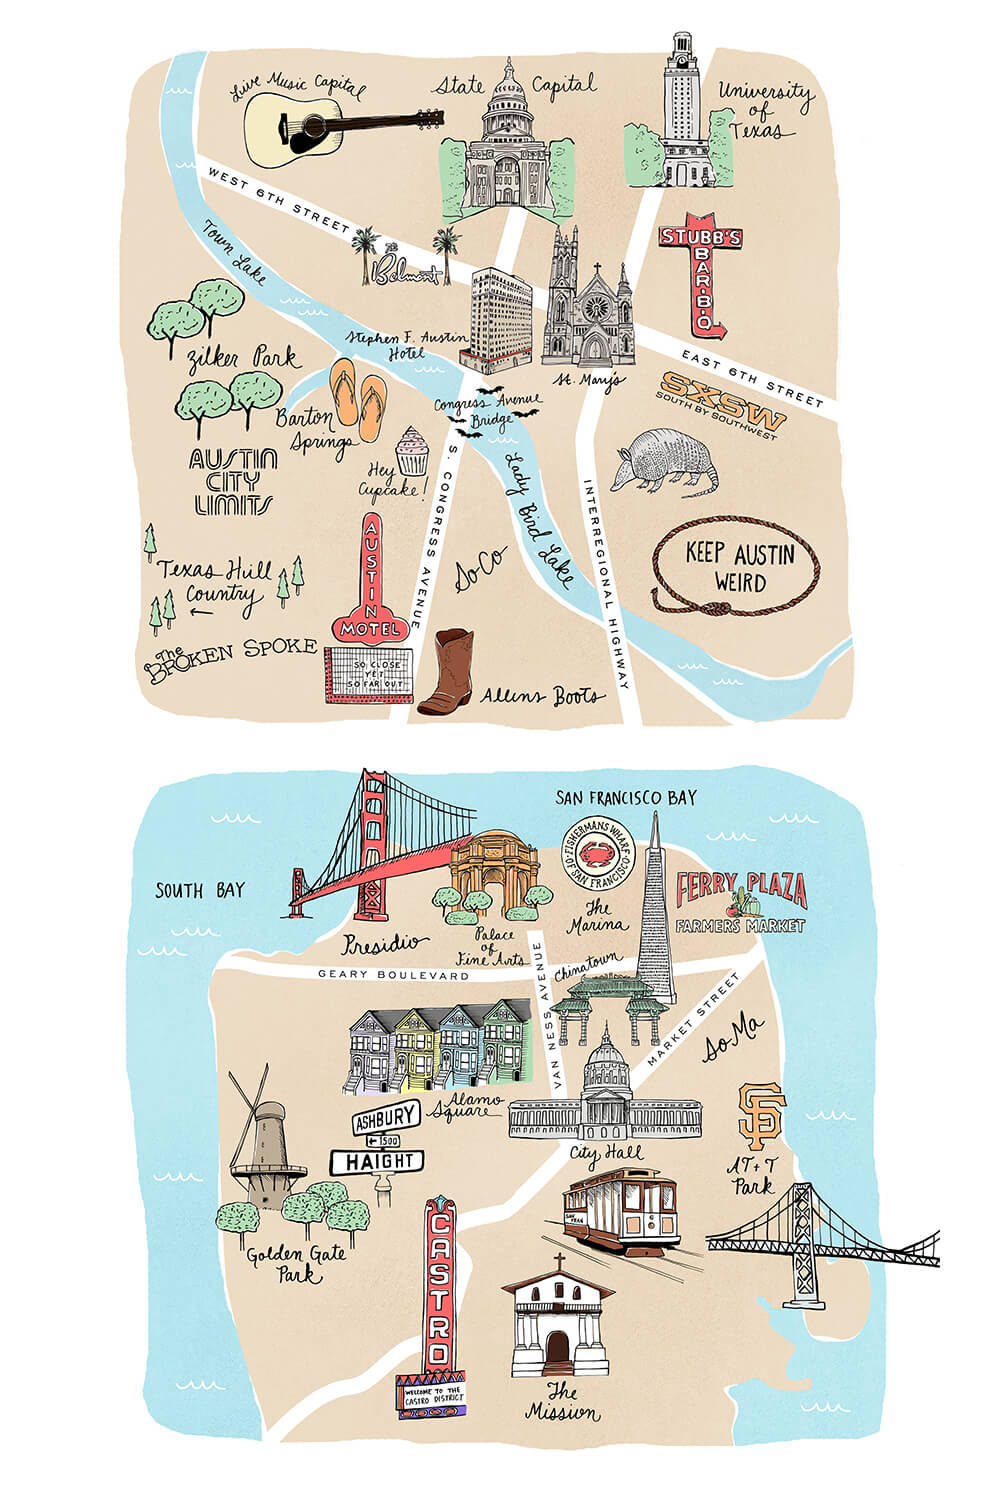 Austin and San Francisco maps